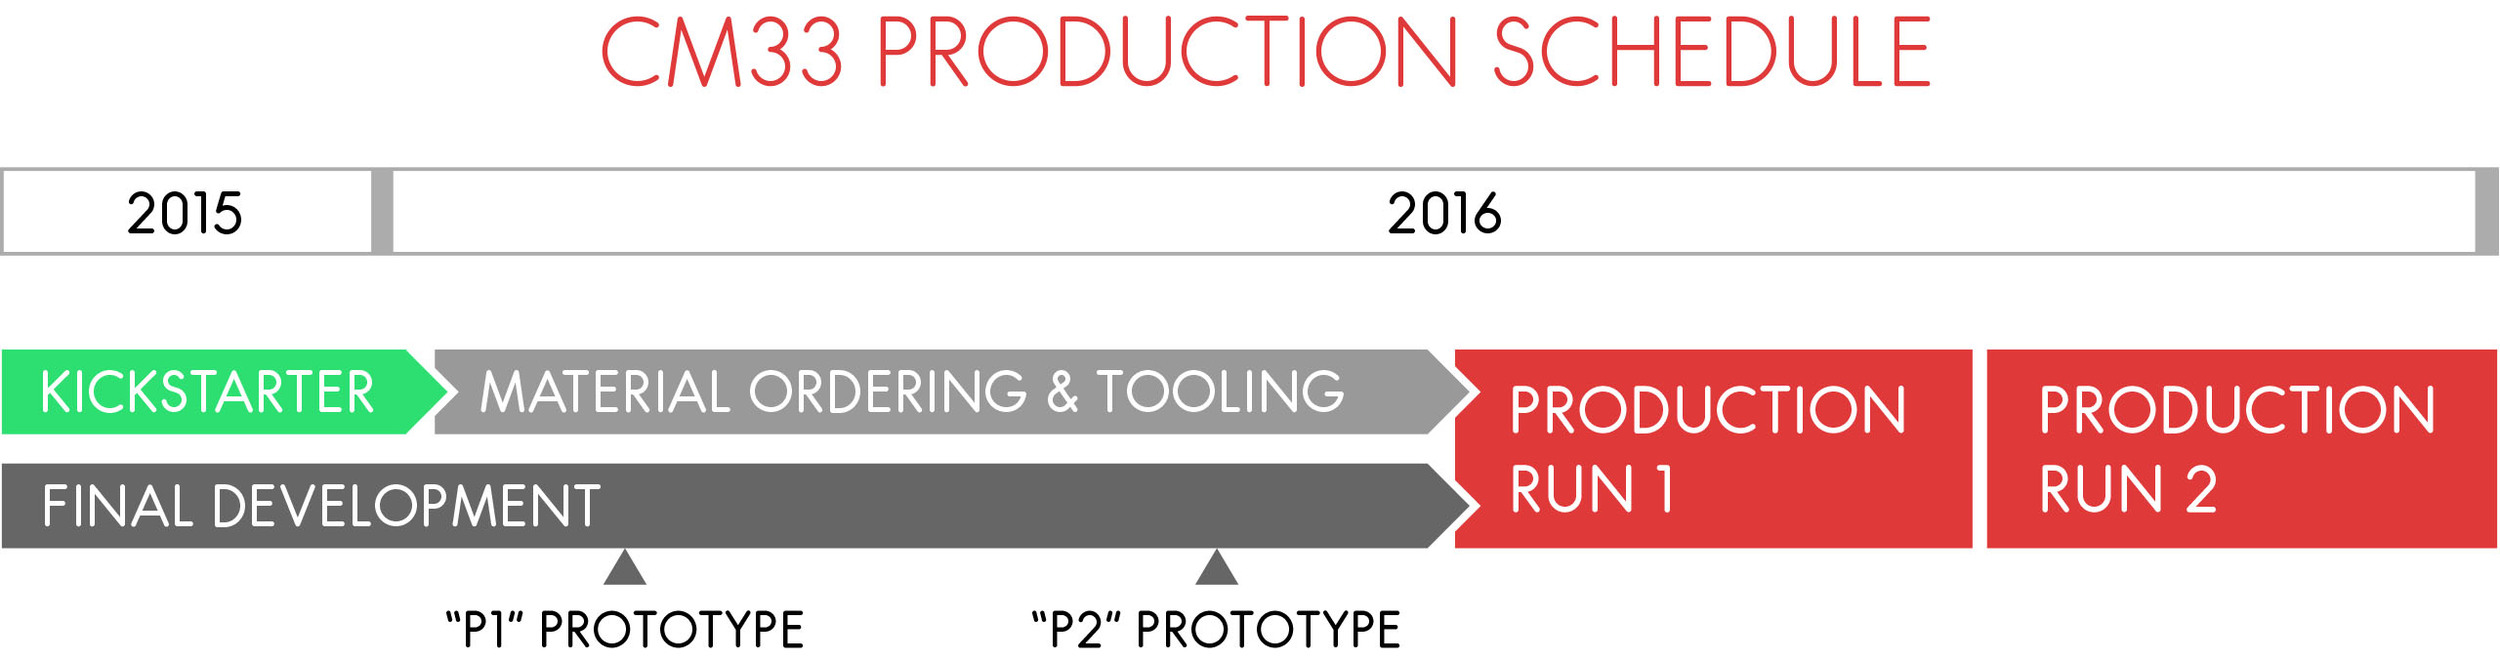 Estimated schedule for Kickstarter production